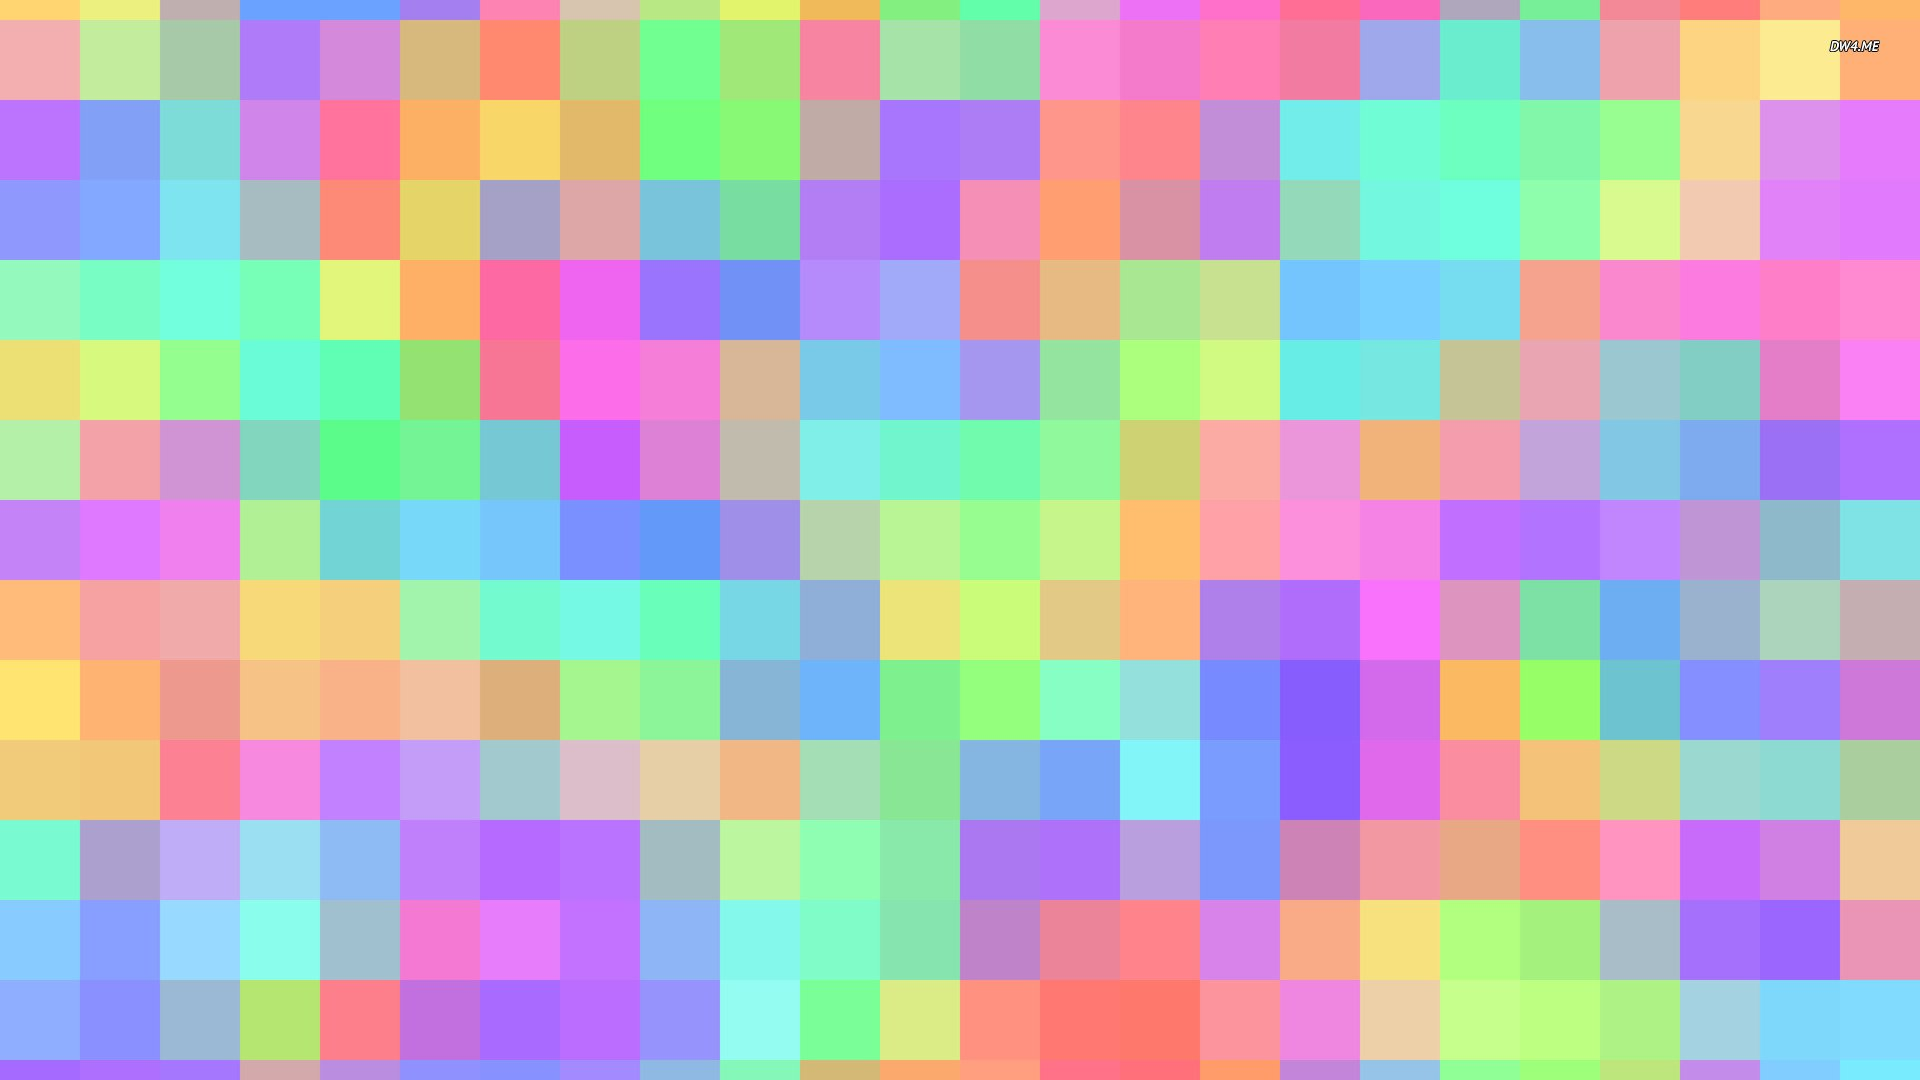 Pastel squares wallpaper   Abstract wallpapers   1230 1920x1080